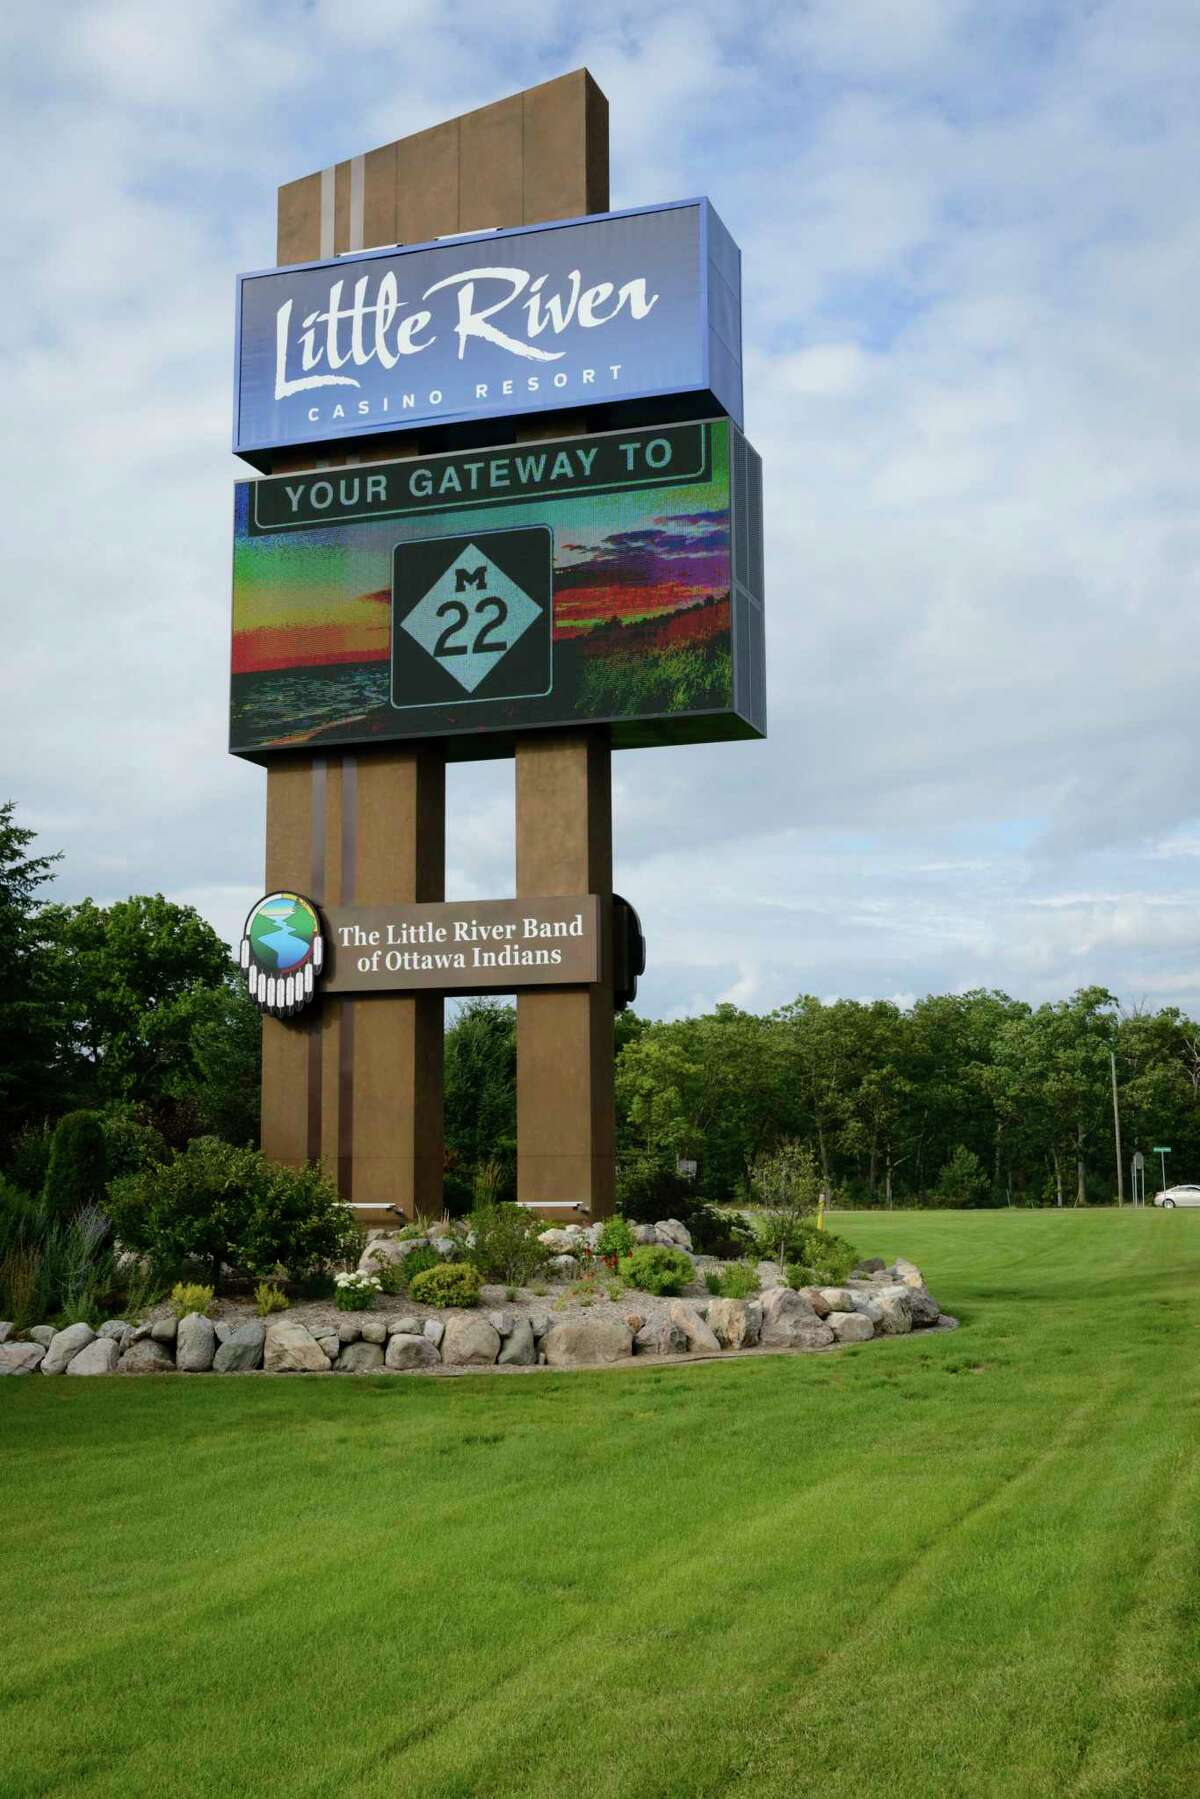 TheLittle River Casino Resort at 8 a.m. on June 1 with an approved health and safety program in place. (Courtesy photo)